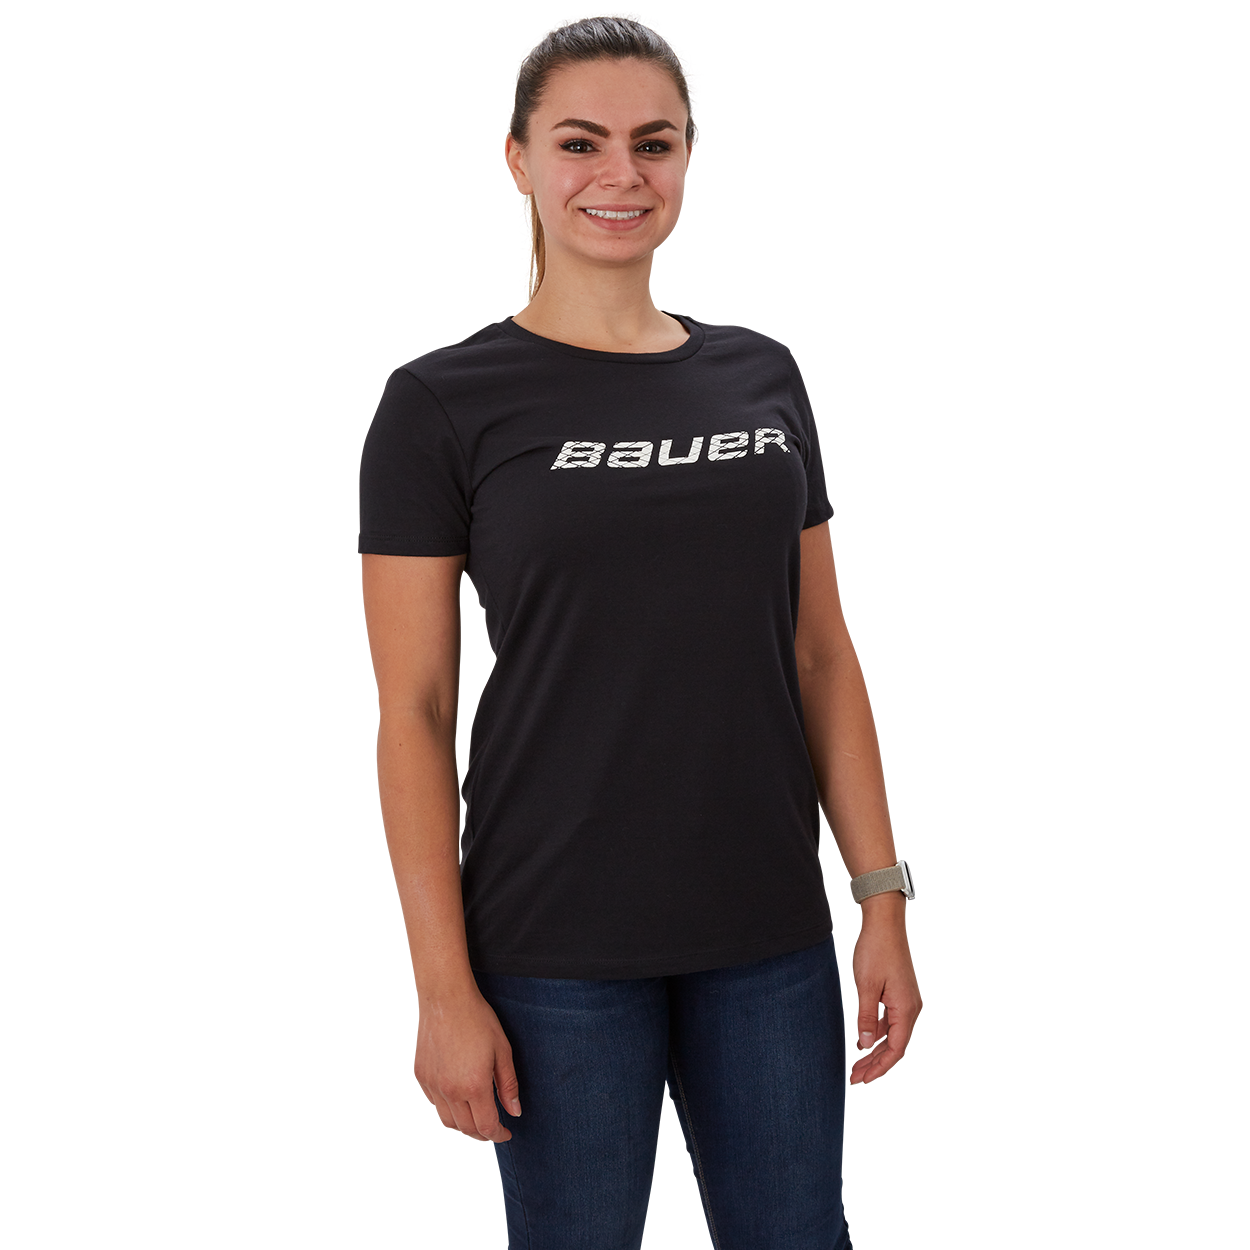 Short Sleeve Women's T-Shirt with Graphic,Черный,Размер M